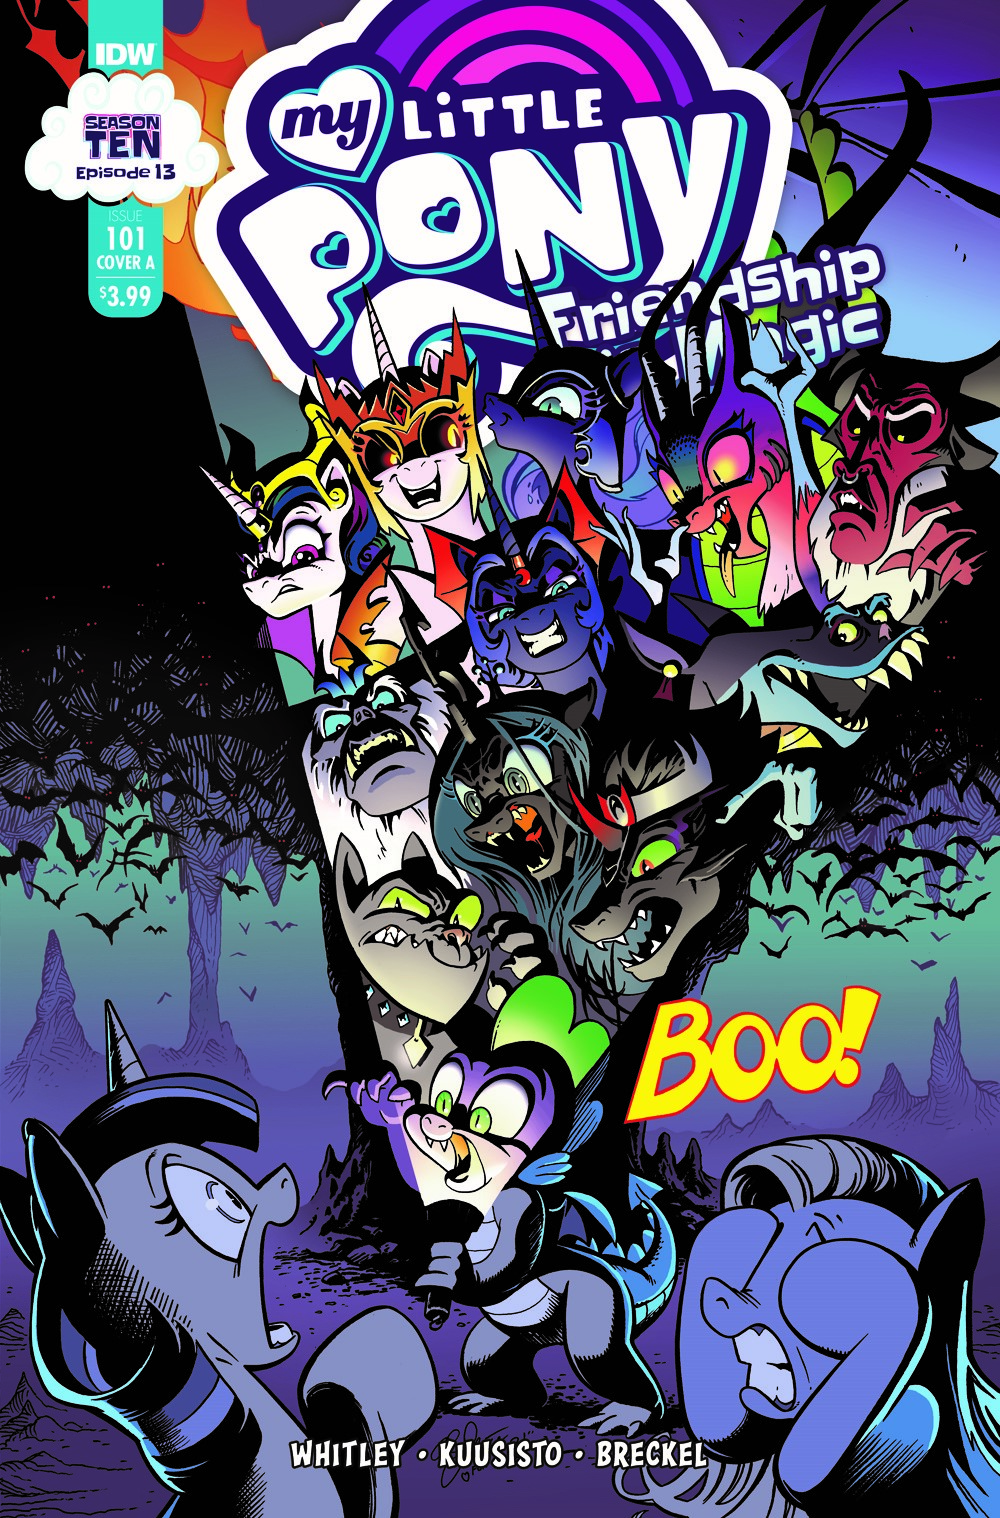 MLP101_13-coverA ComicList Previews: MY LITTLE PONY FRIENDSHIP IS MAGIC #101